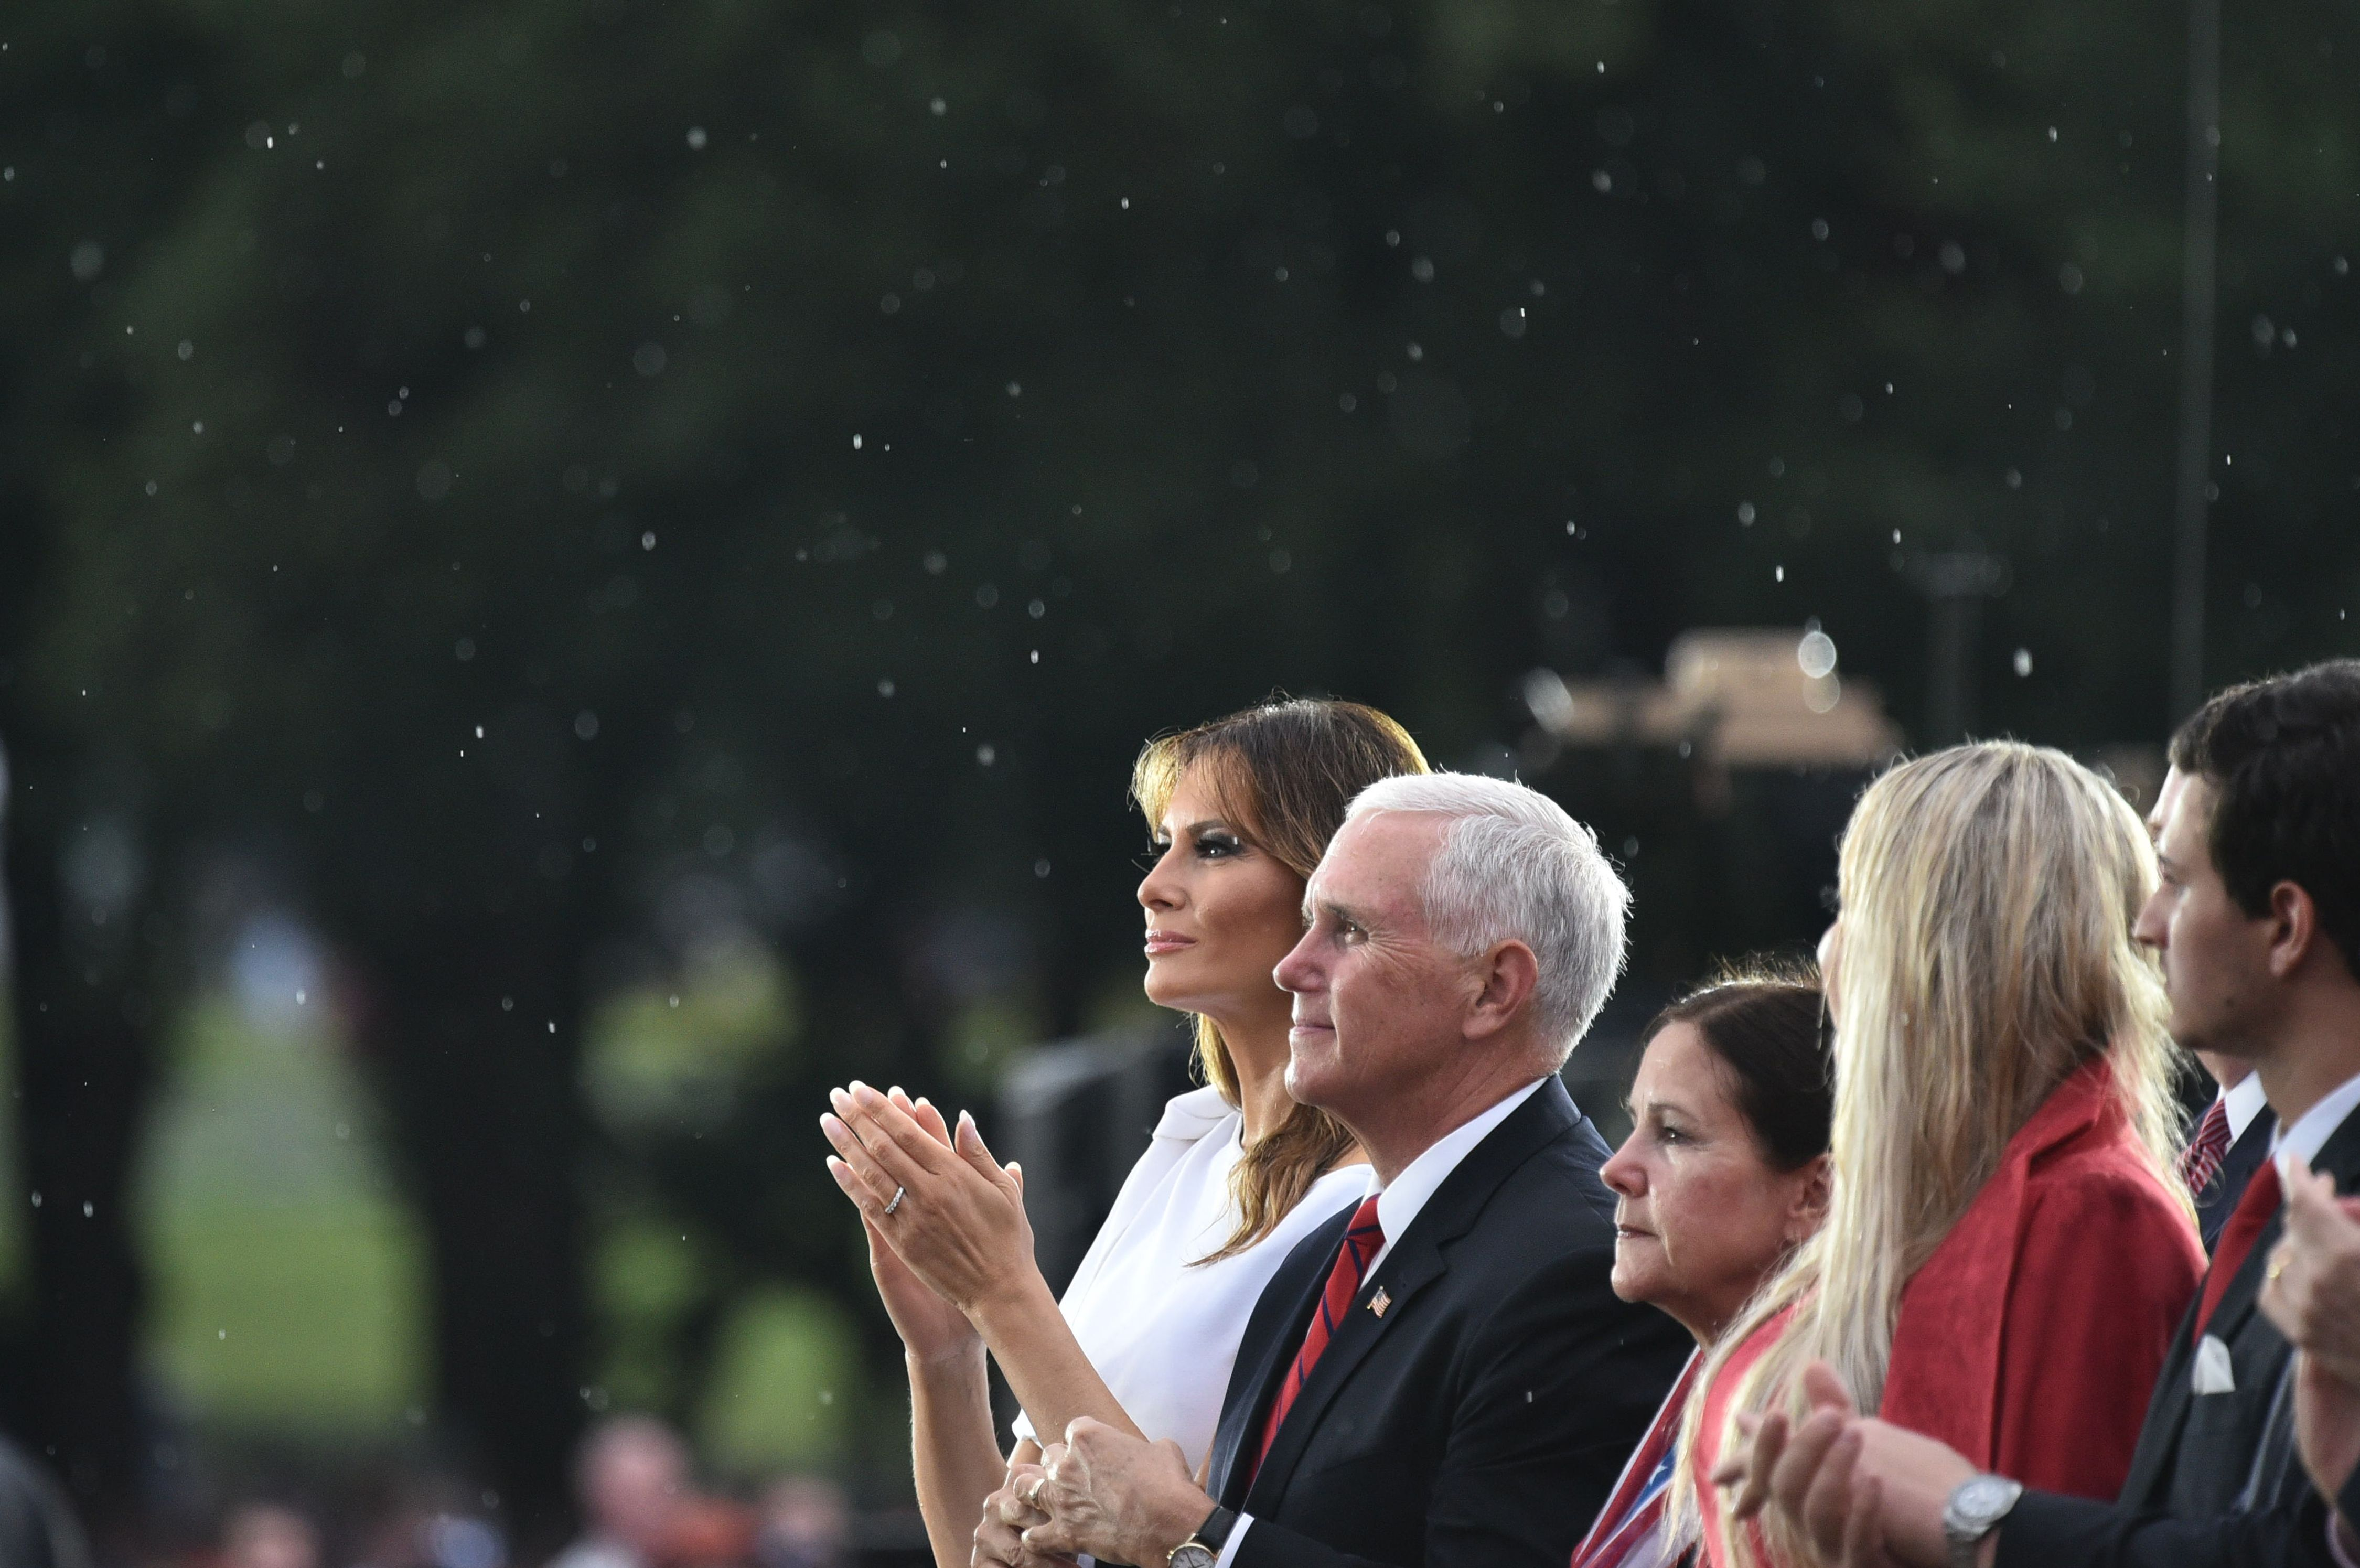 """US First Lady Melania Trump and Vice President Mike Pence applaud during the """"Salute to America"""" Fourth of July event at the Lincoln Memorial in Washington, DC, July 4, 2019. (Photo by MANDEL NGAN / AFP)        (Photo credit should read MANDEL NGAN/AFP/Getty Images)"""